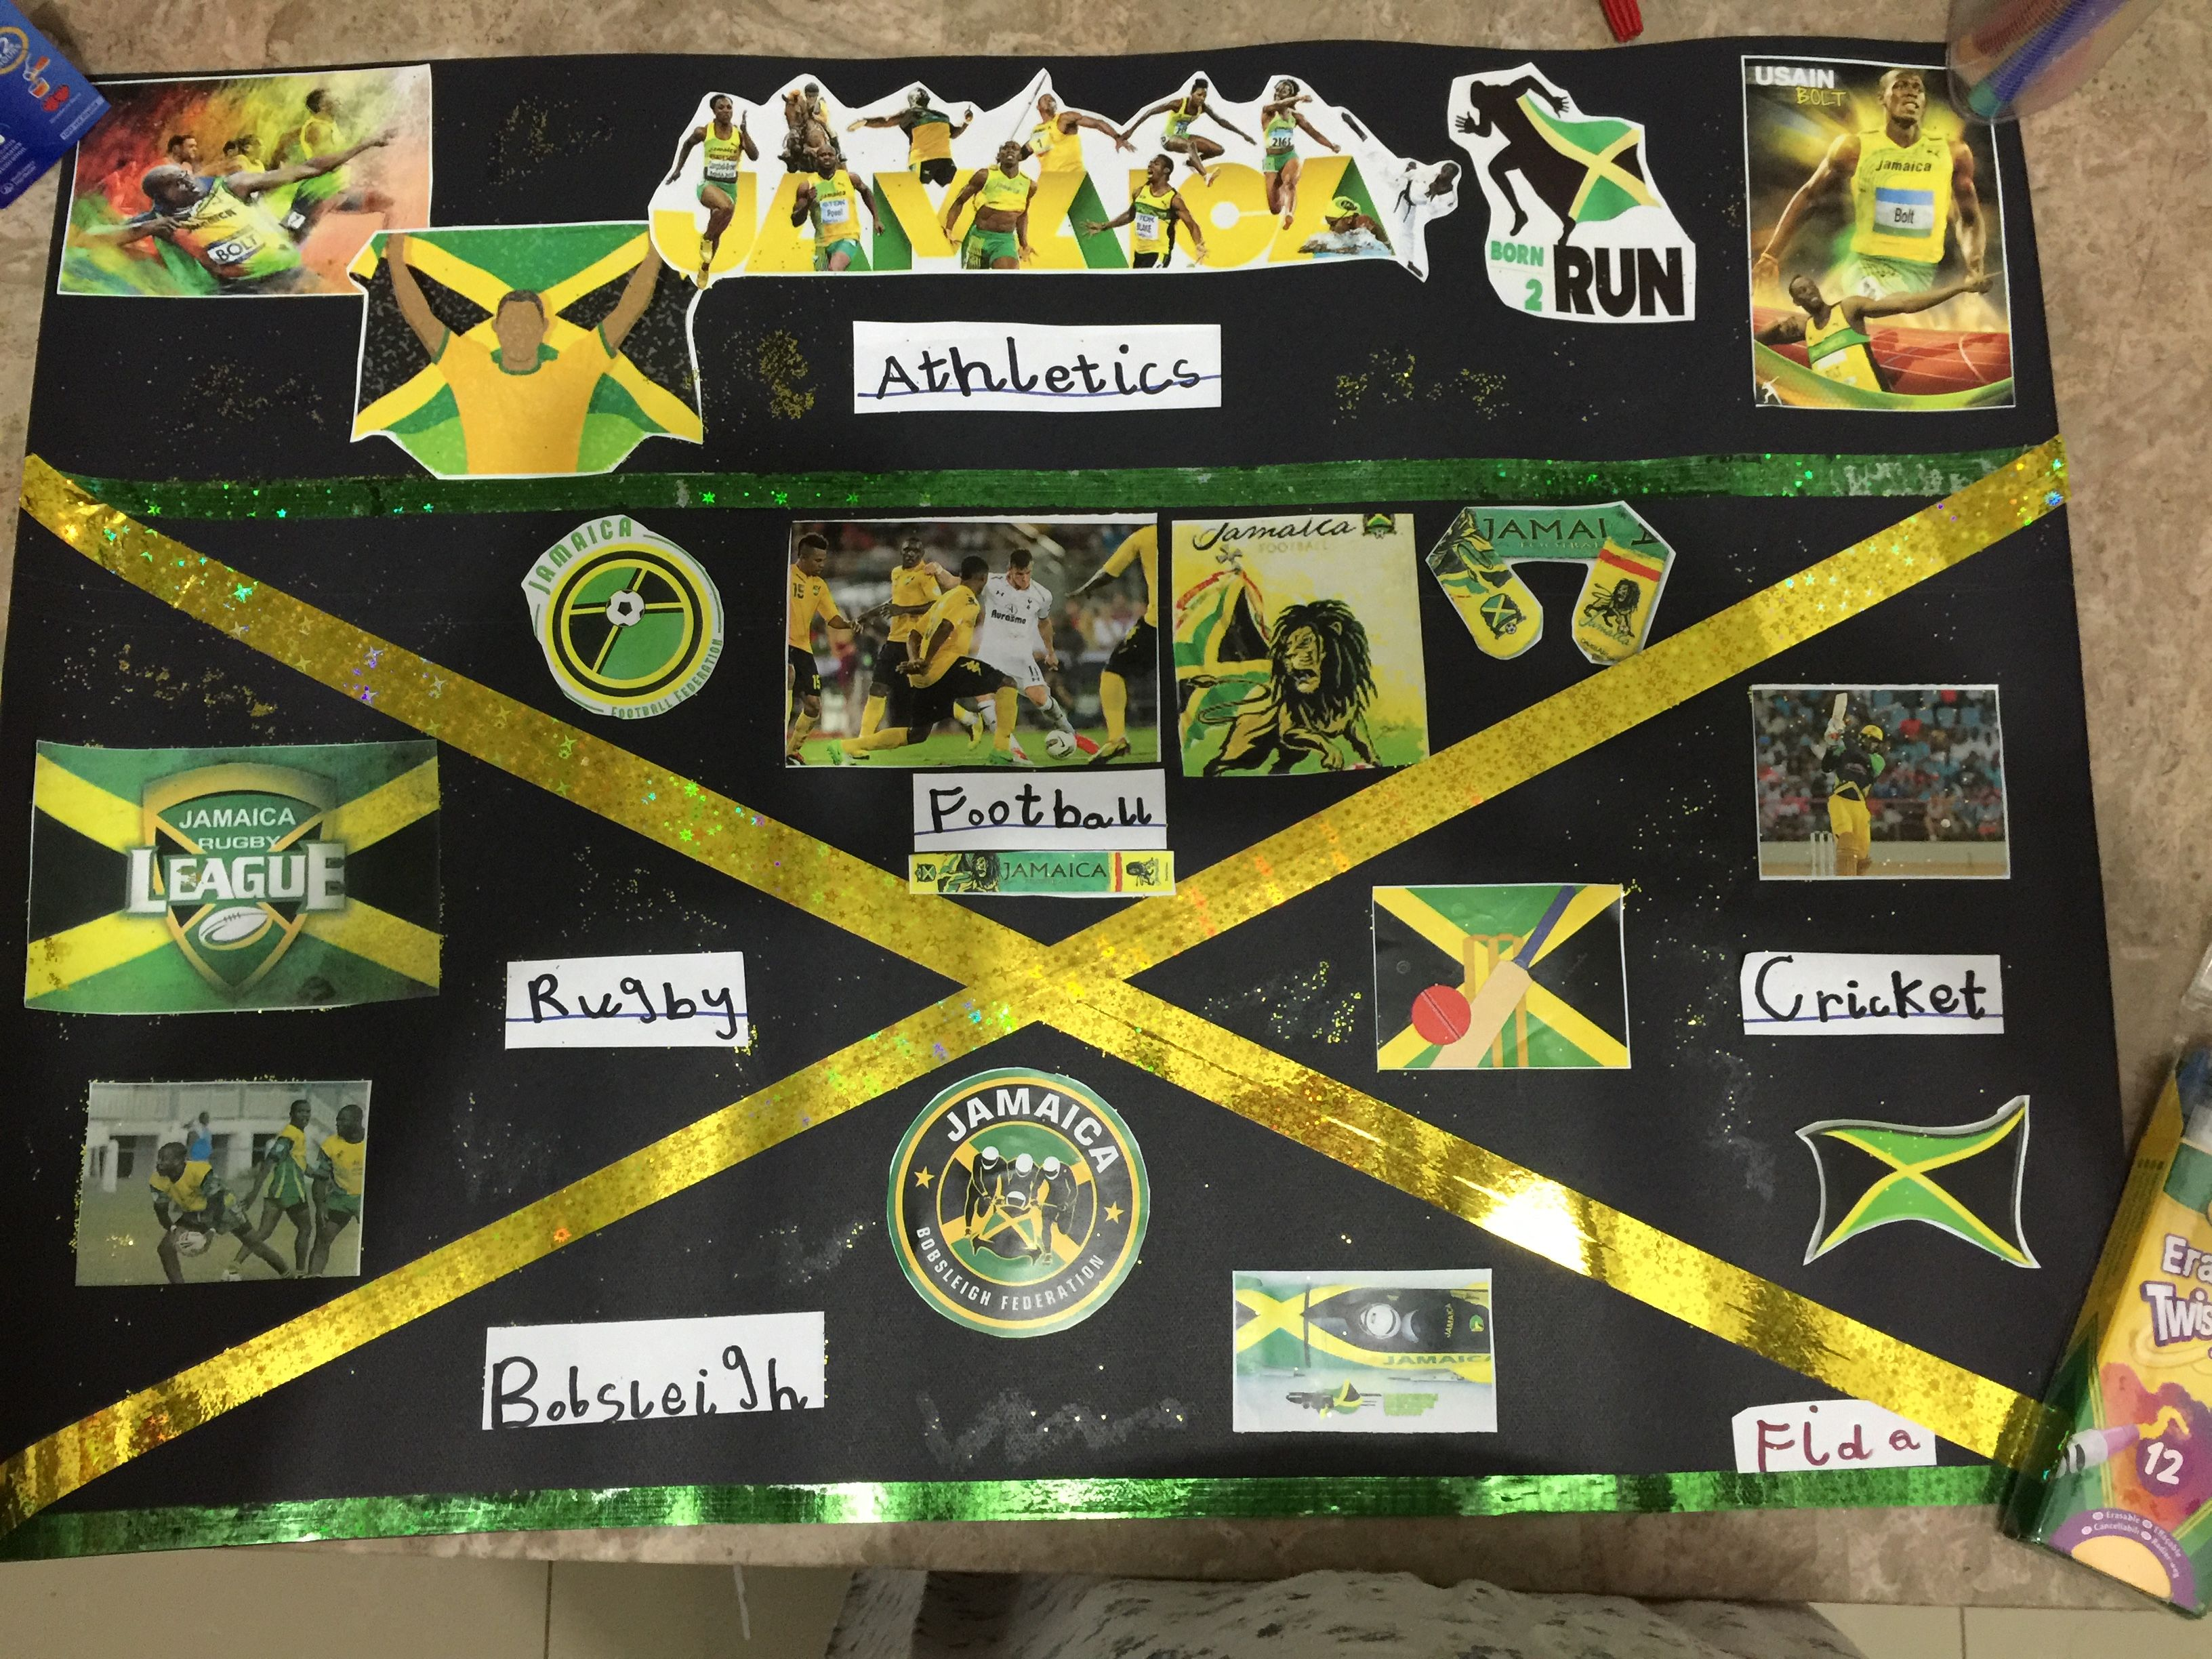 Intro On Jamaican Sports On International Day For